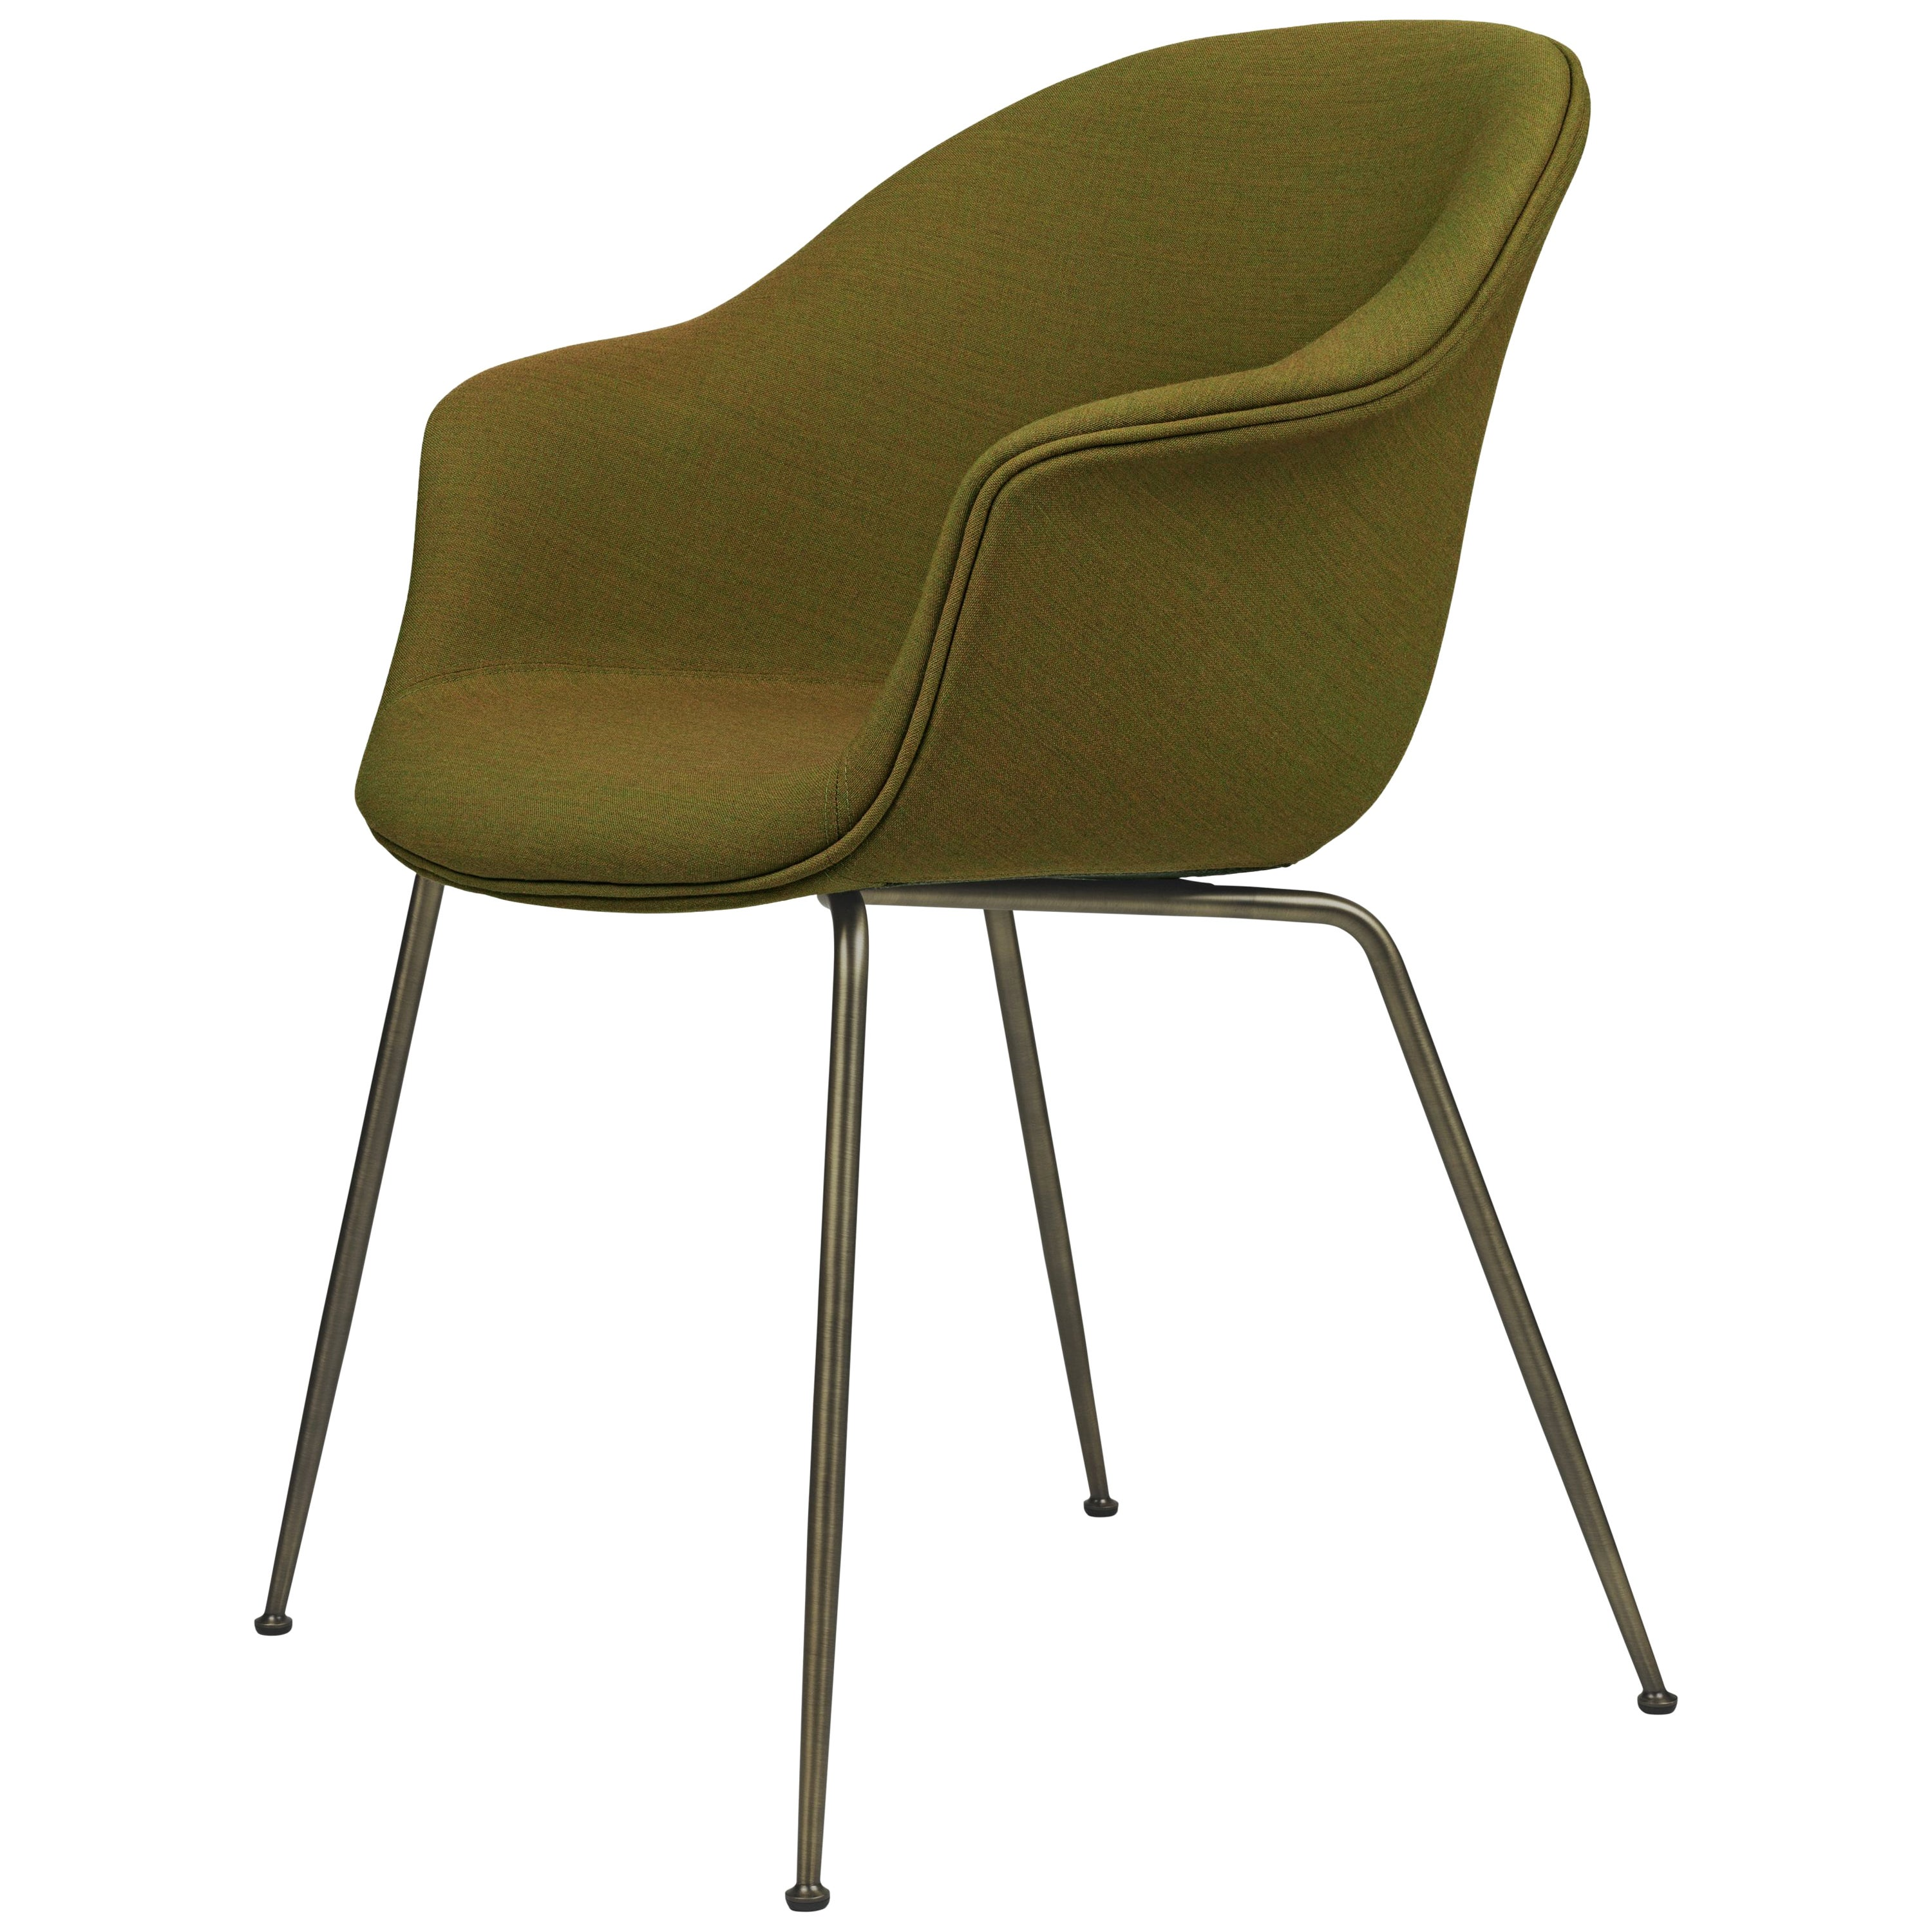 GamFratesi 'Bat' Dining Chair in Green with Antique Brass Conic Base